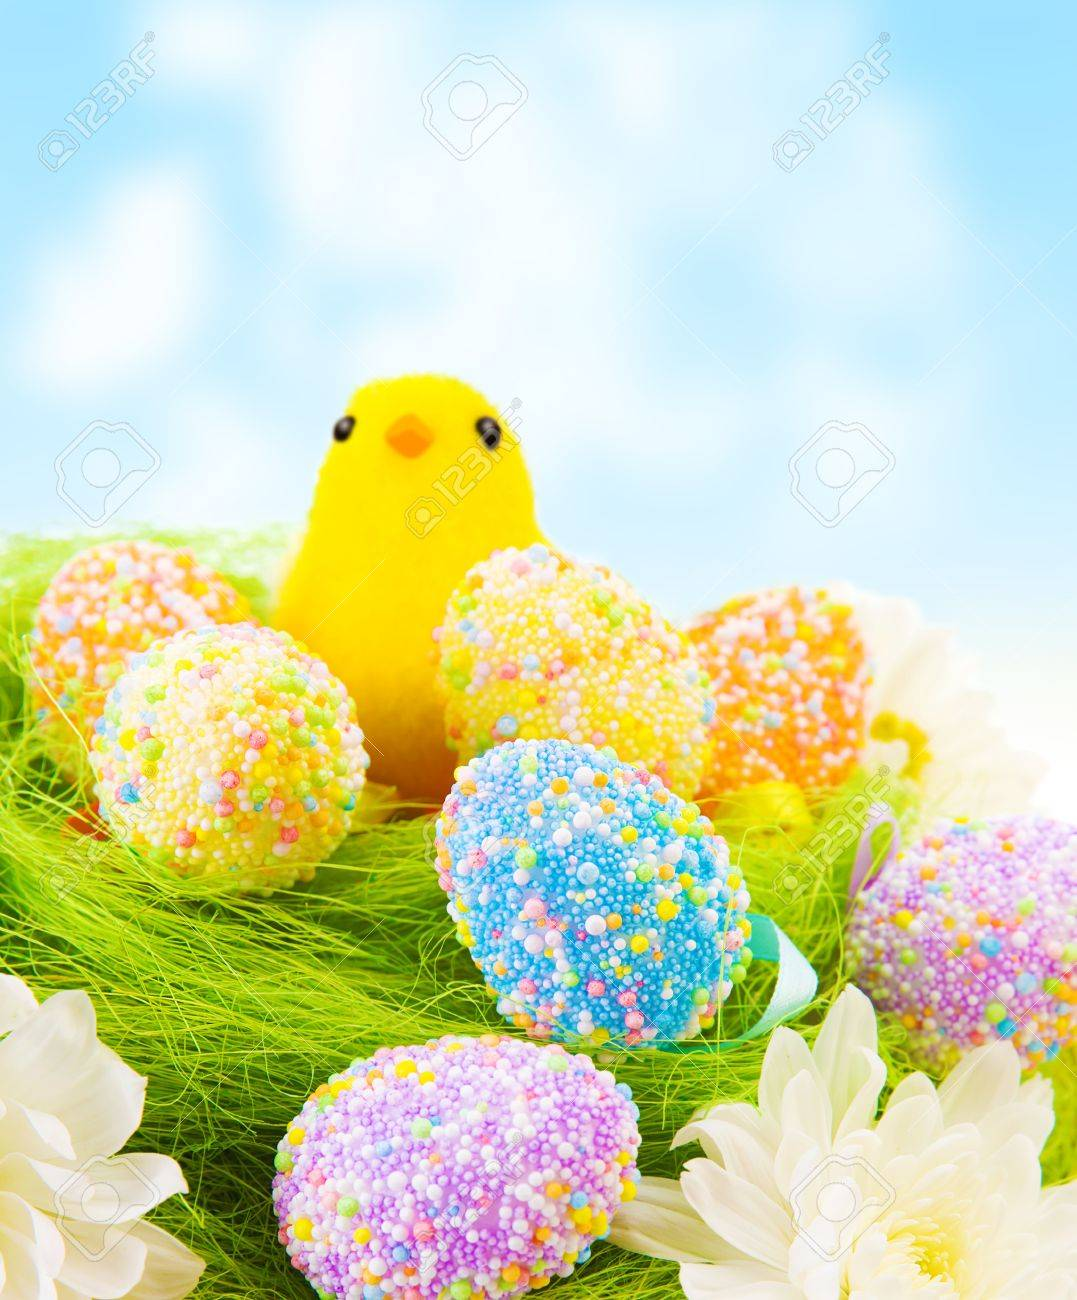 Easter decoration outdoor - Cute Small Yellow Chick Toy With Colorful Eggs In The Nest Outdoor Traditional Easter Decoration